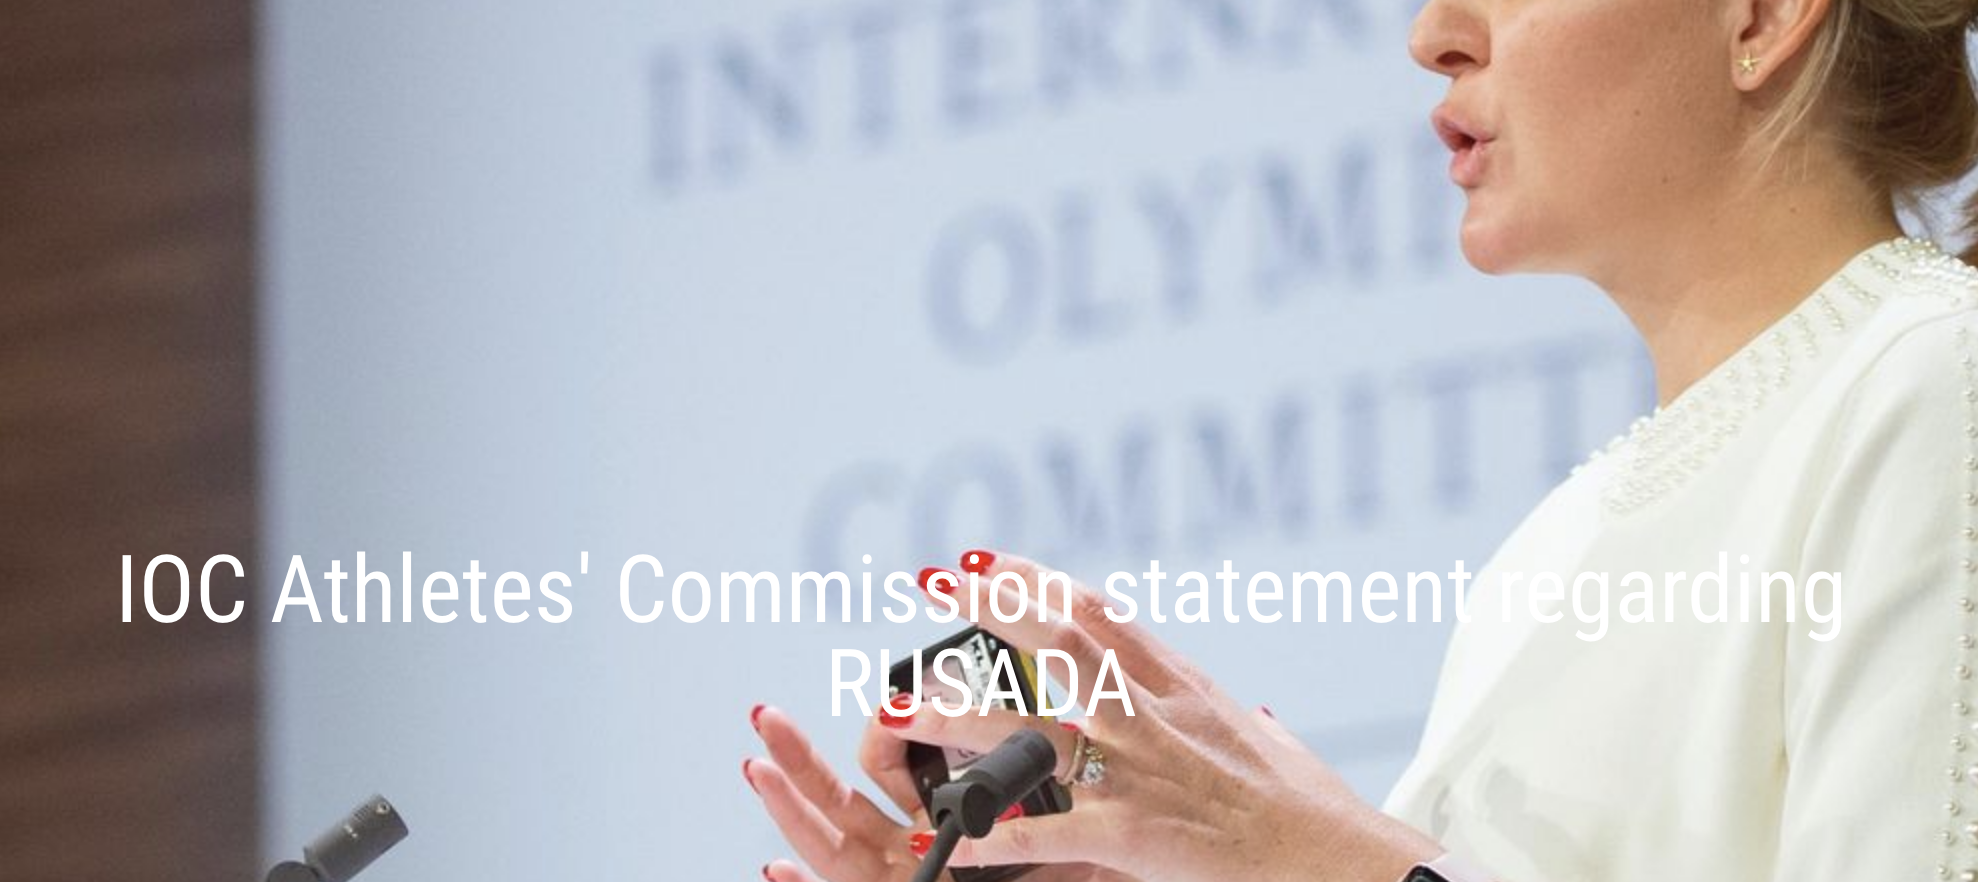 (screen capture: olympic.org)